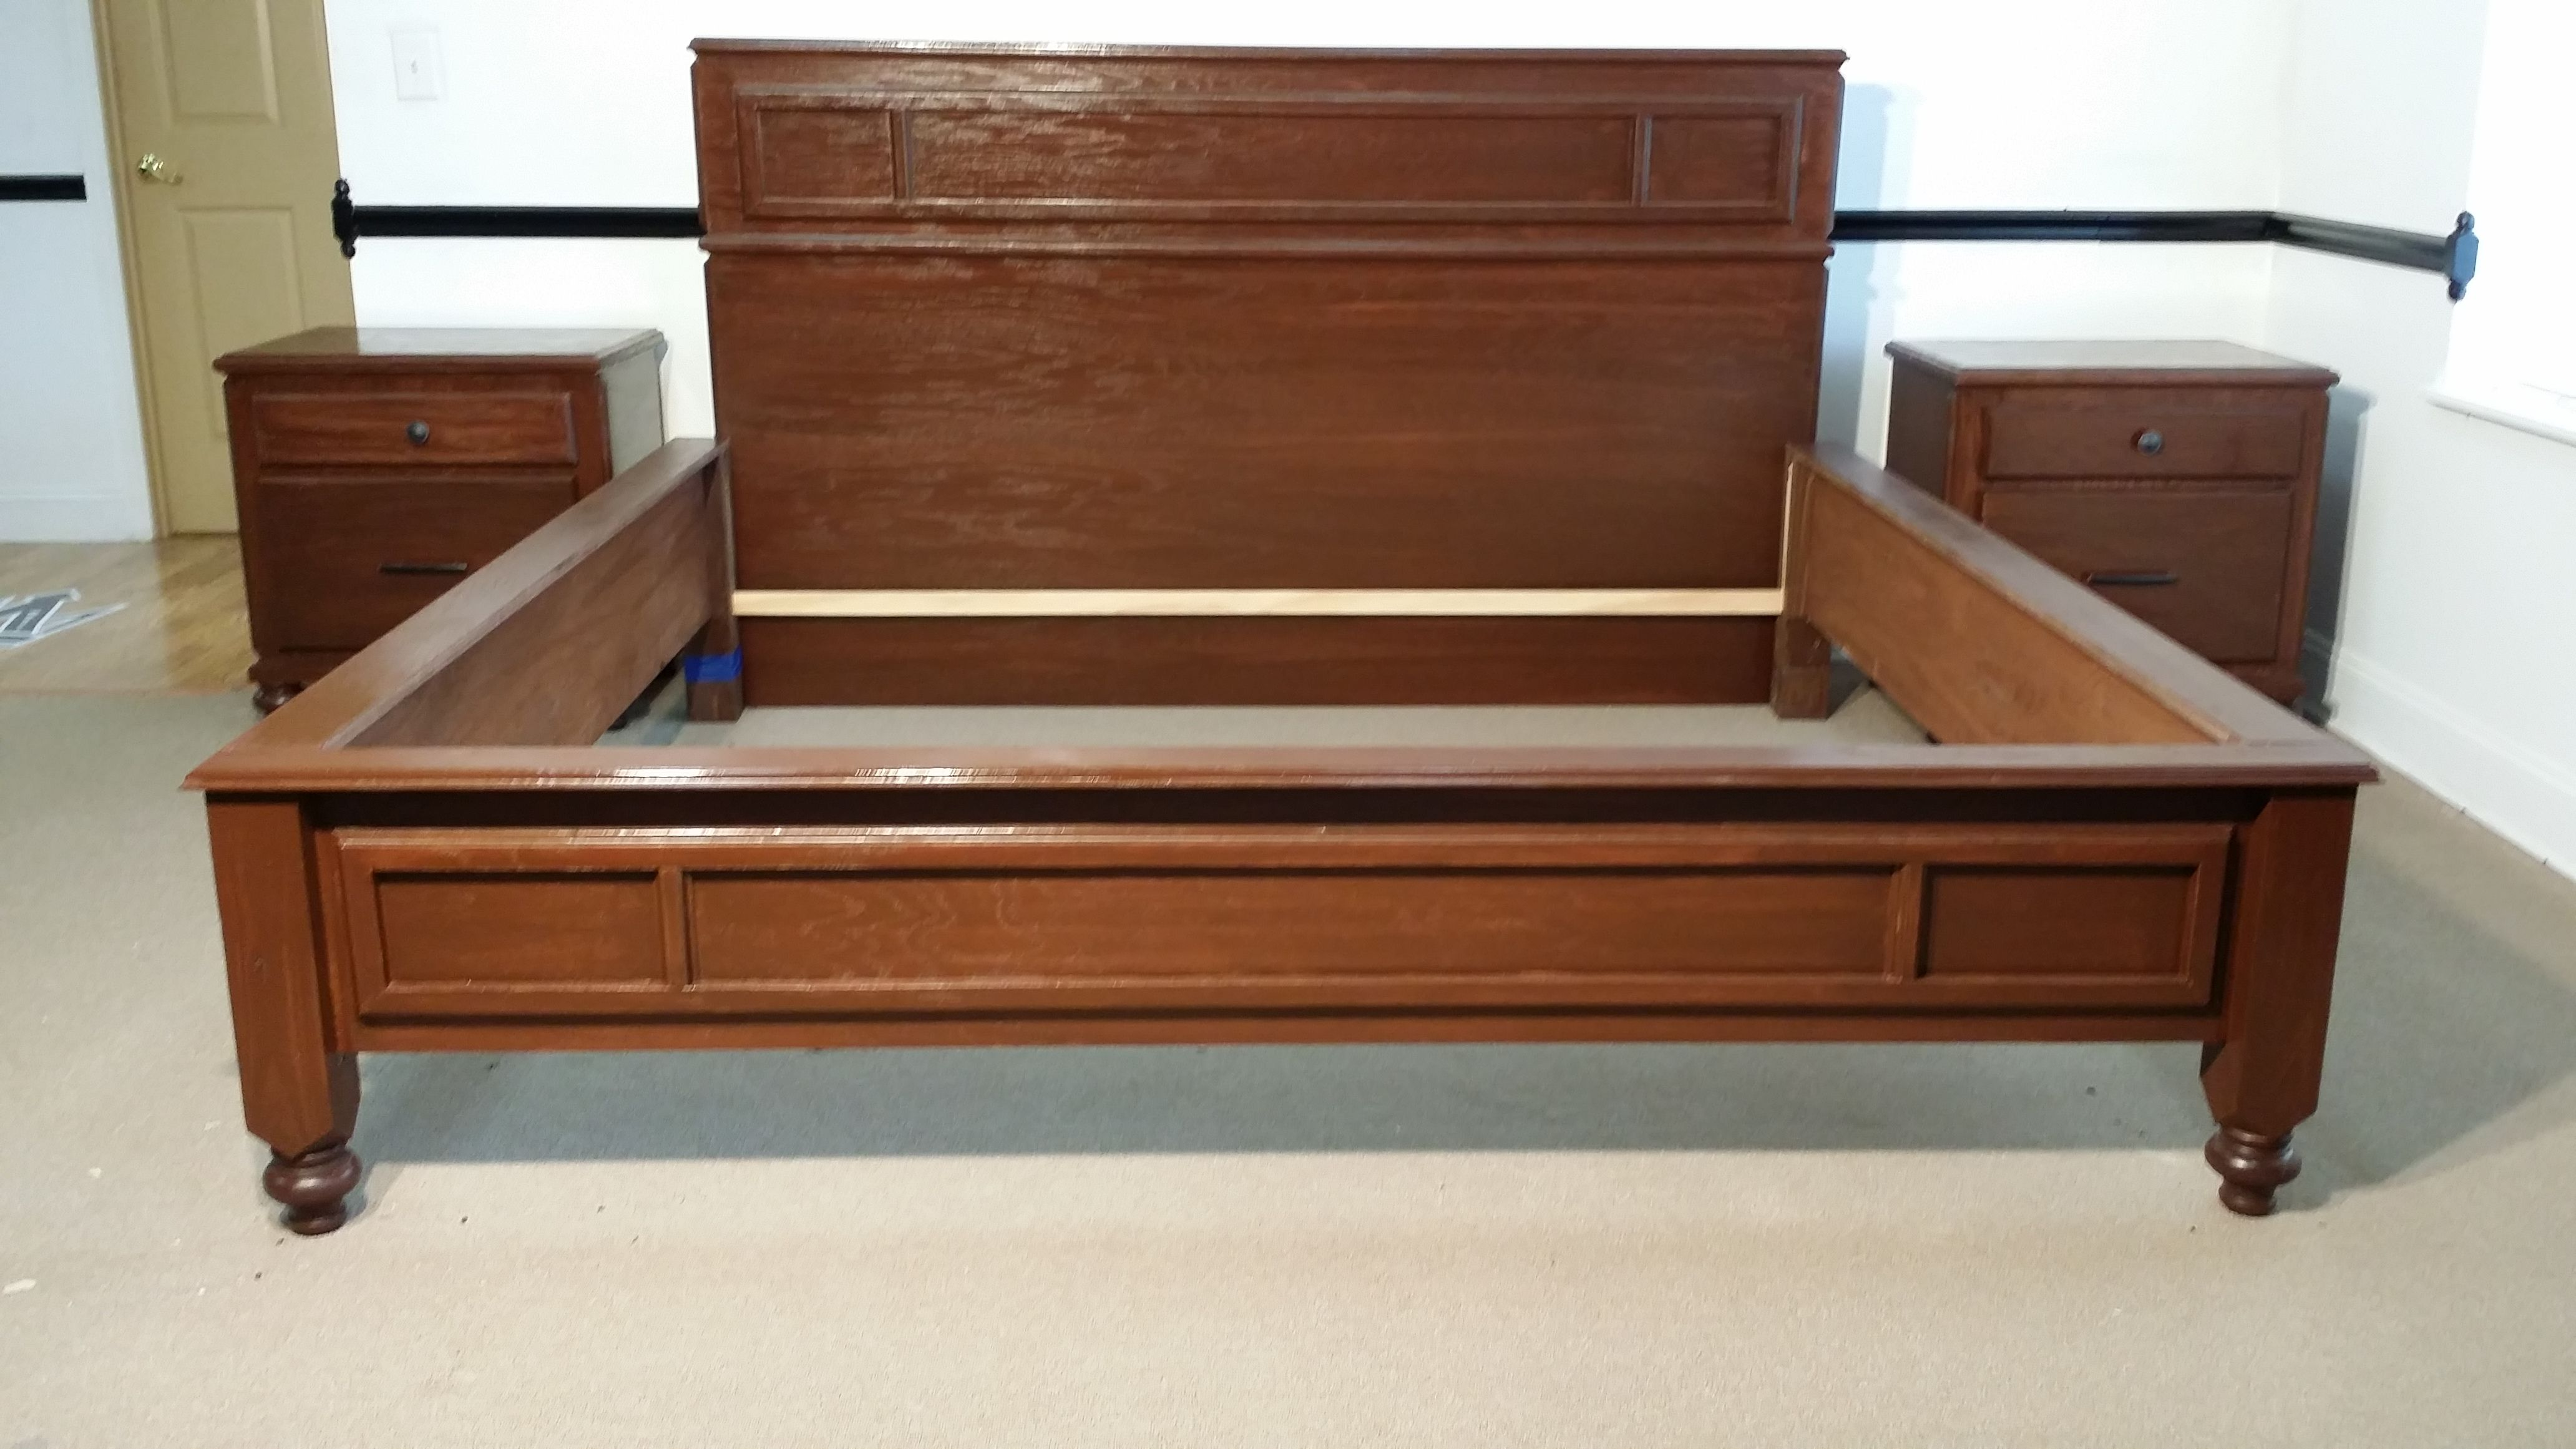 Buy a custom 5 piece oak bedroom set made to order from mccorkle designs for Custom made bedroom furniture